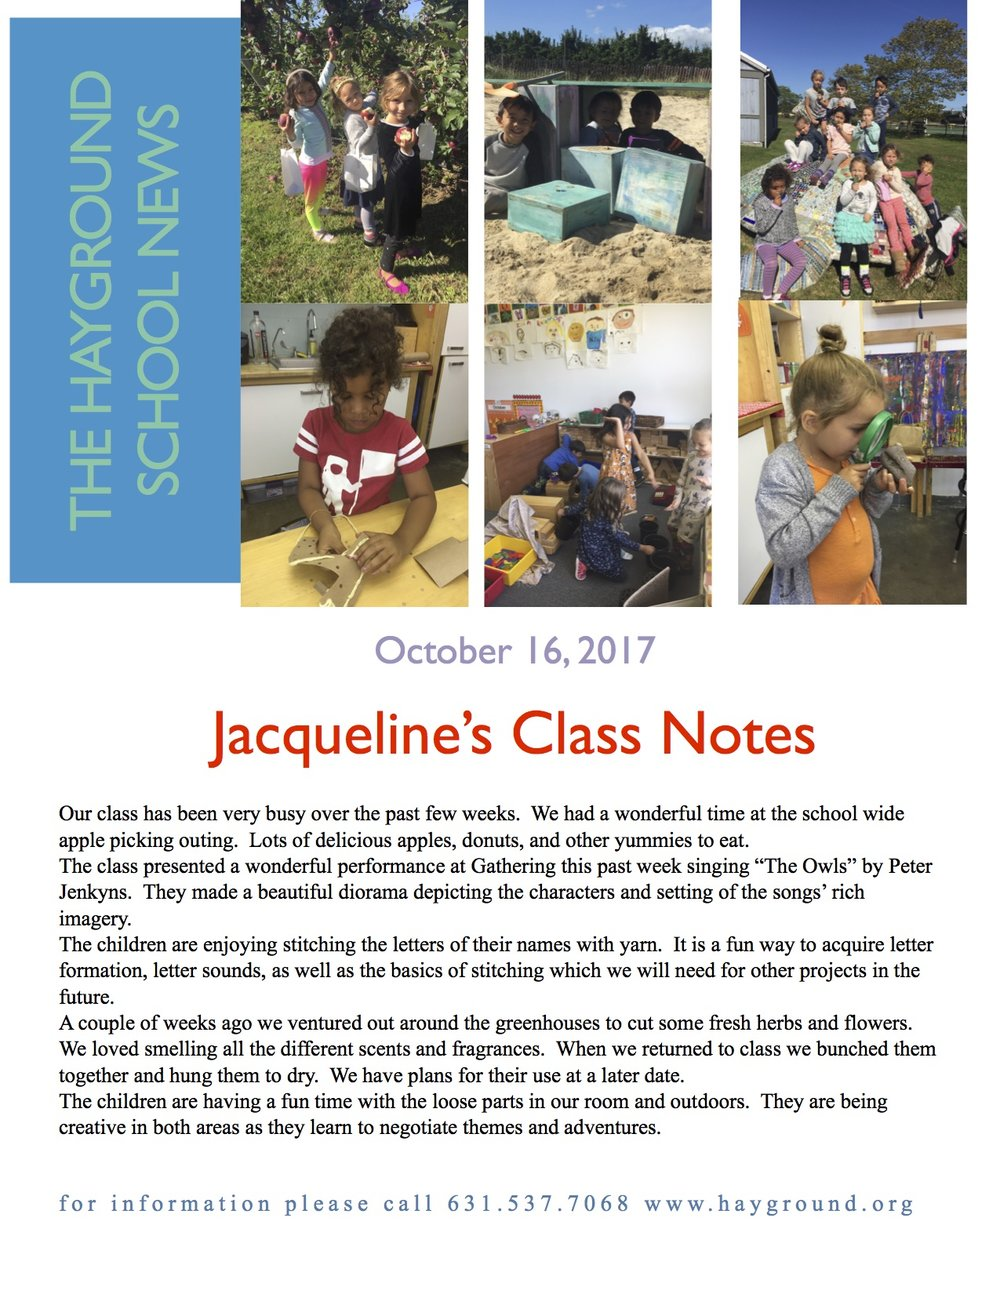 Class Notes, Oct 16, 2017 copy.jpg